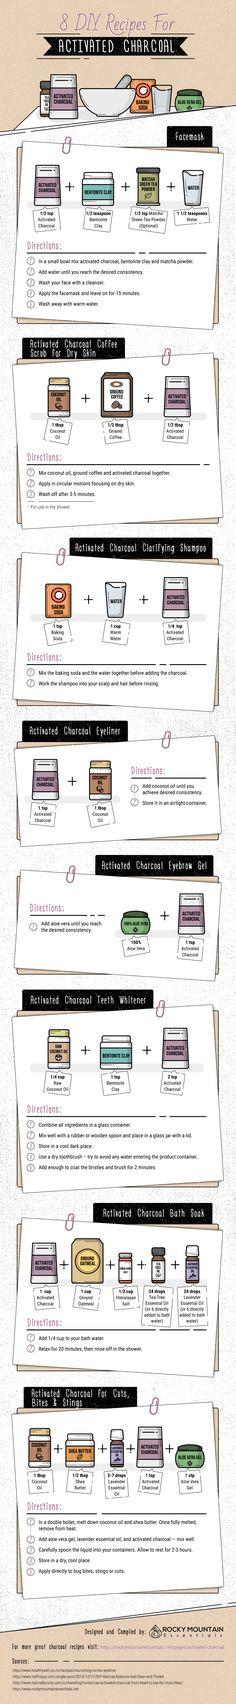 8 DIY Activated Charcoal Recipes - Infographic